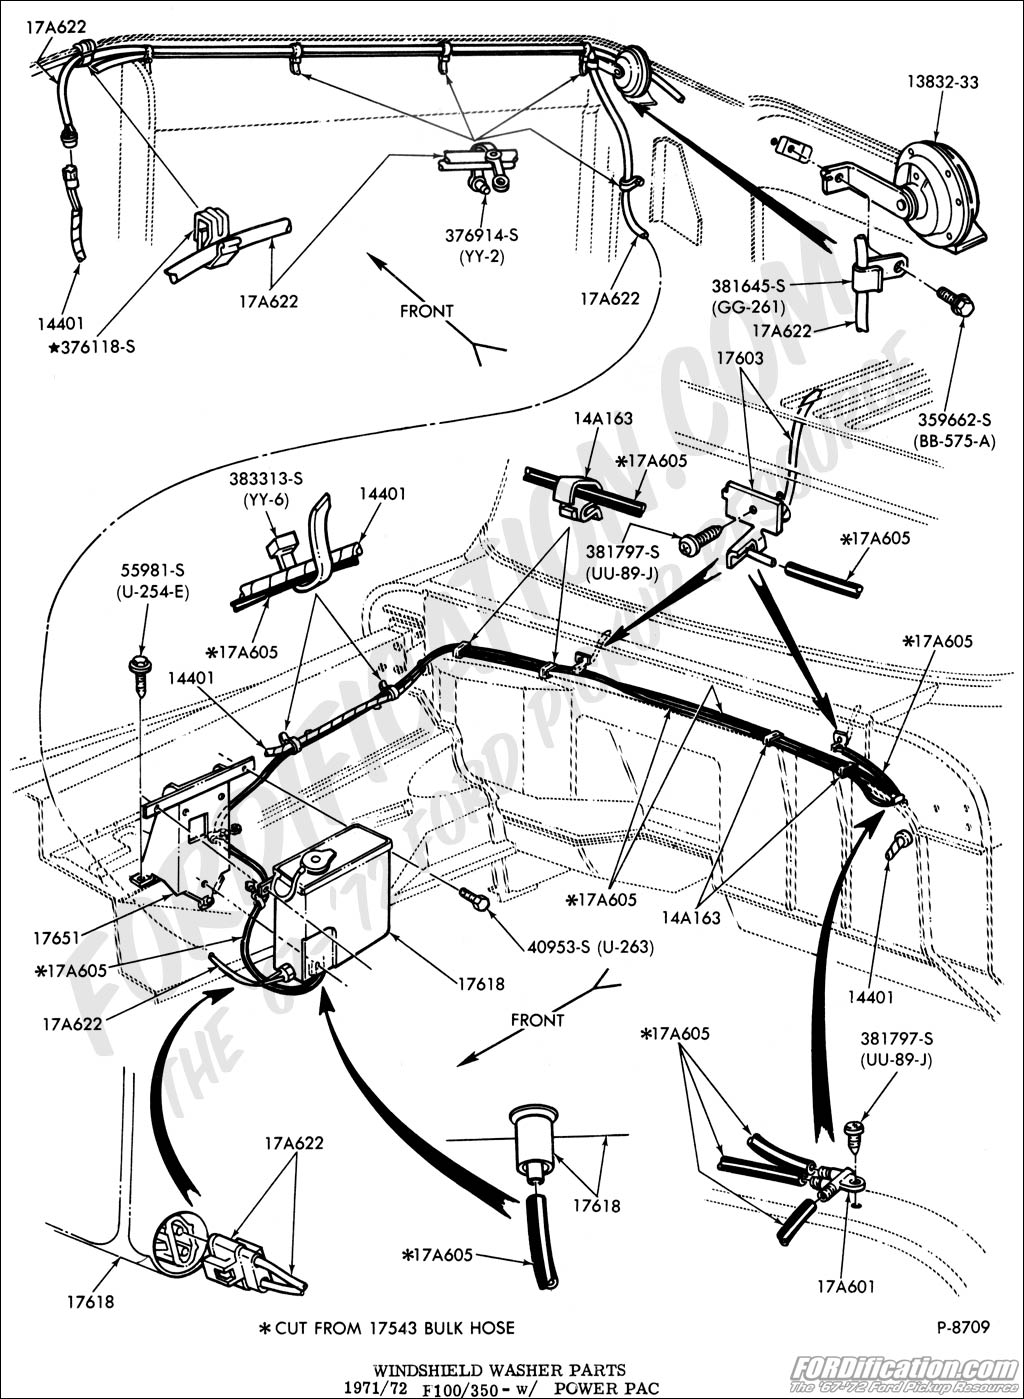 Ford F Series F 350 1996 Fuse Box Diagram Usa Version moreover Gibson Central Air Conditioner Wiring Diagram Coleman moreover Vacuumhoses as well Schematics h besides Schematics c. on ford air conditioner diagram